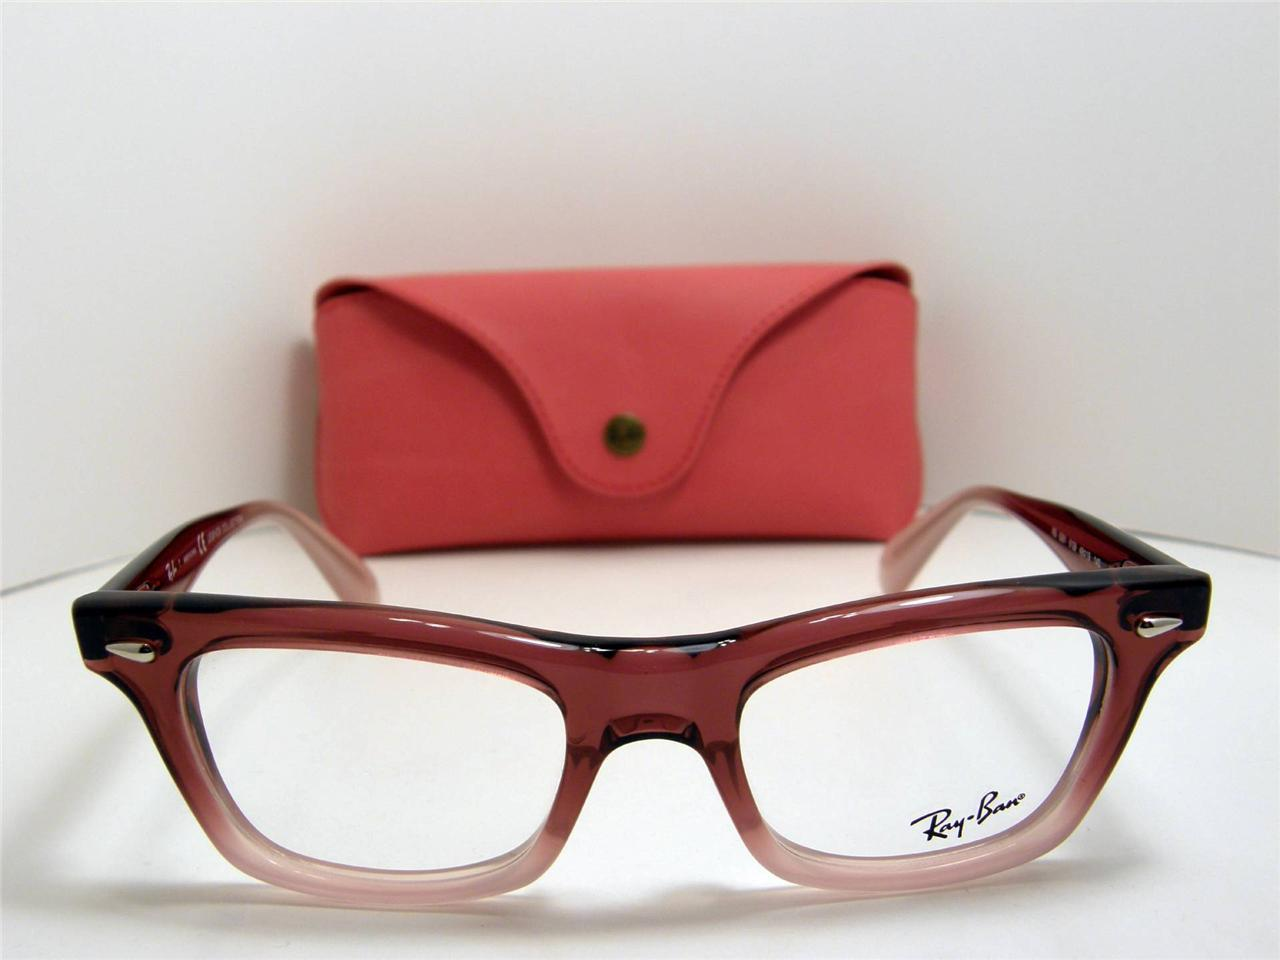 d28cf3091f Hot New Authentic Ray Ban Eyeglasses RB 5281 and 45 similar items. S l1600